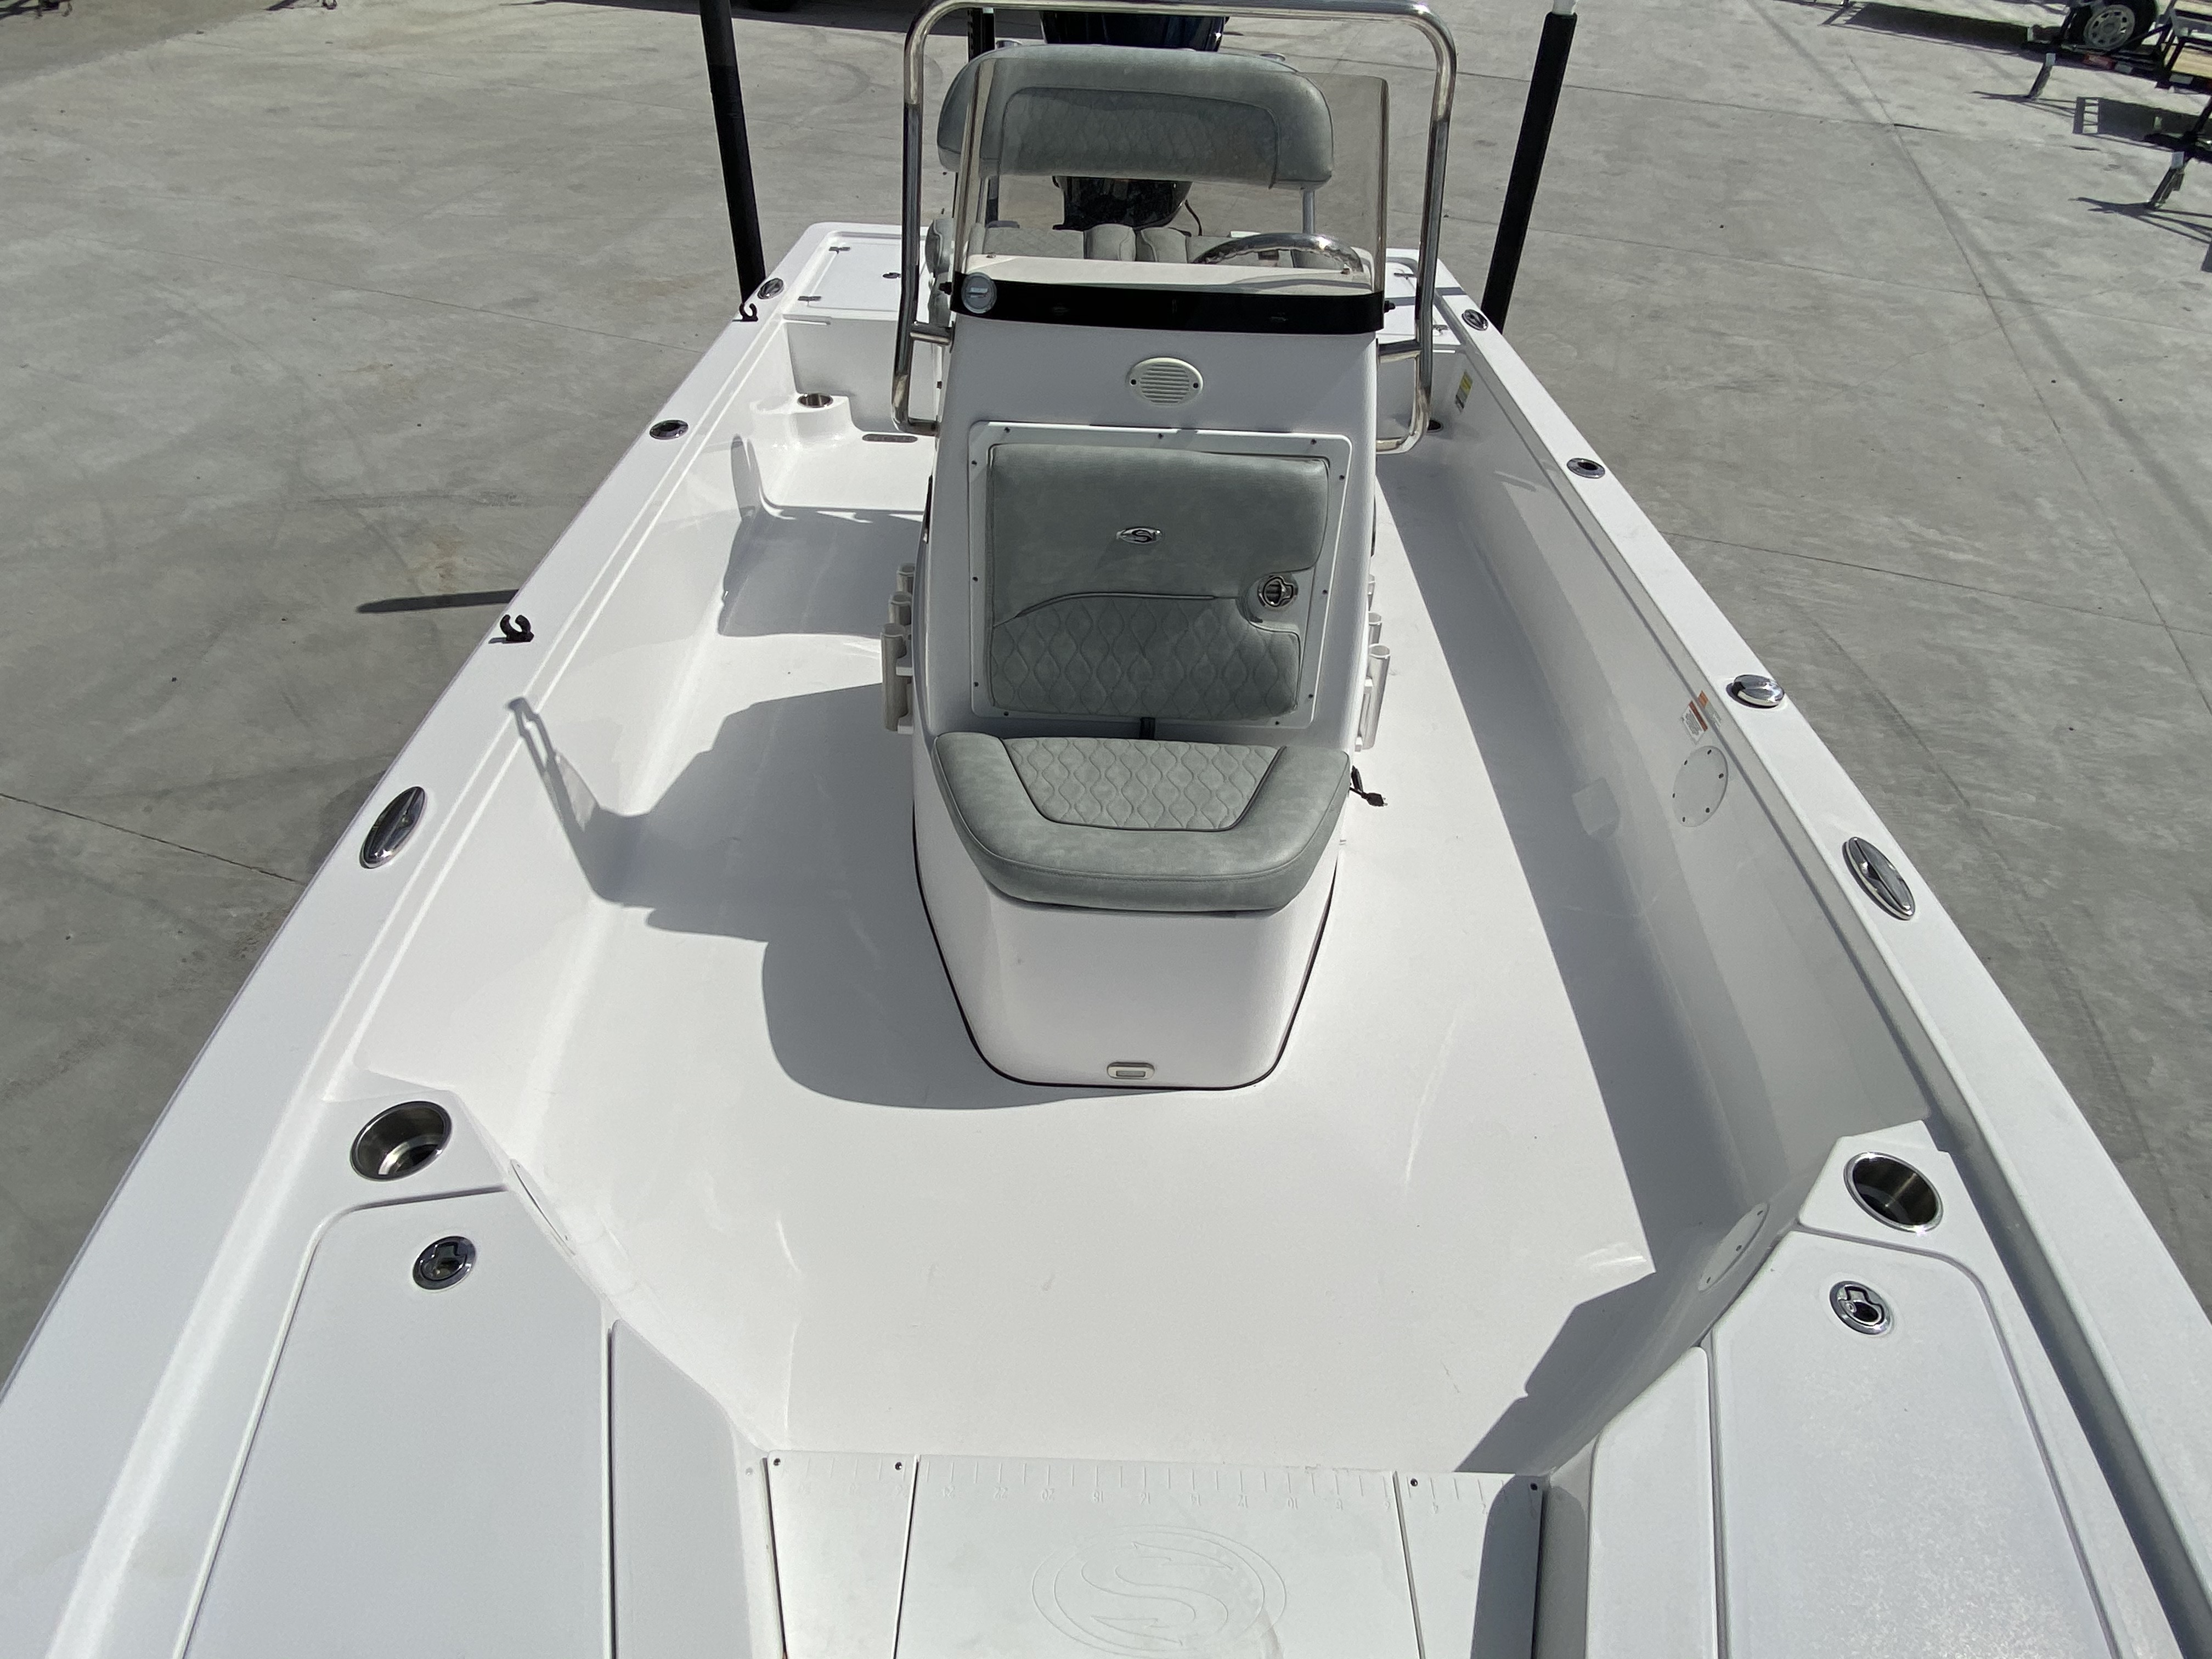 2019 Sportsman Boats boat for sale, model of the boat is 214 Tournament & Image # 16 of 26